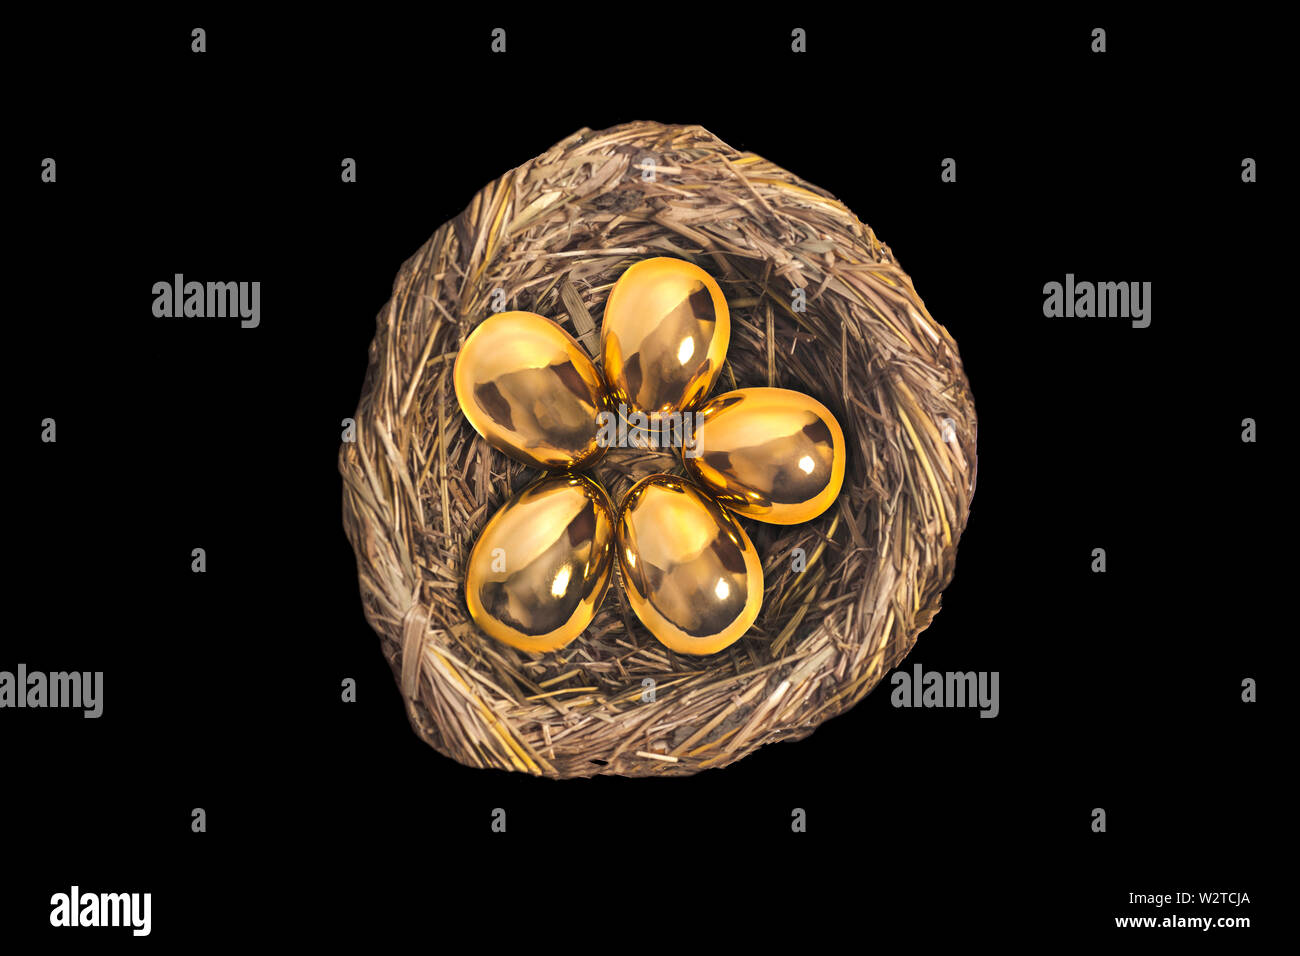 Golden eggs in bird nest isolated on black background - Stock Image